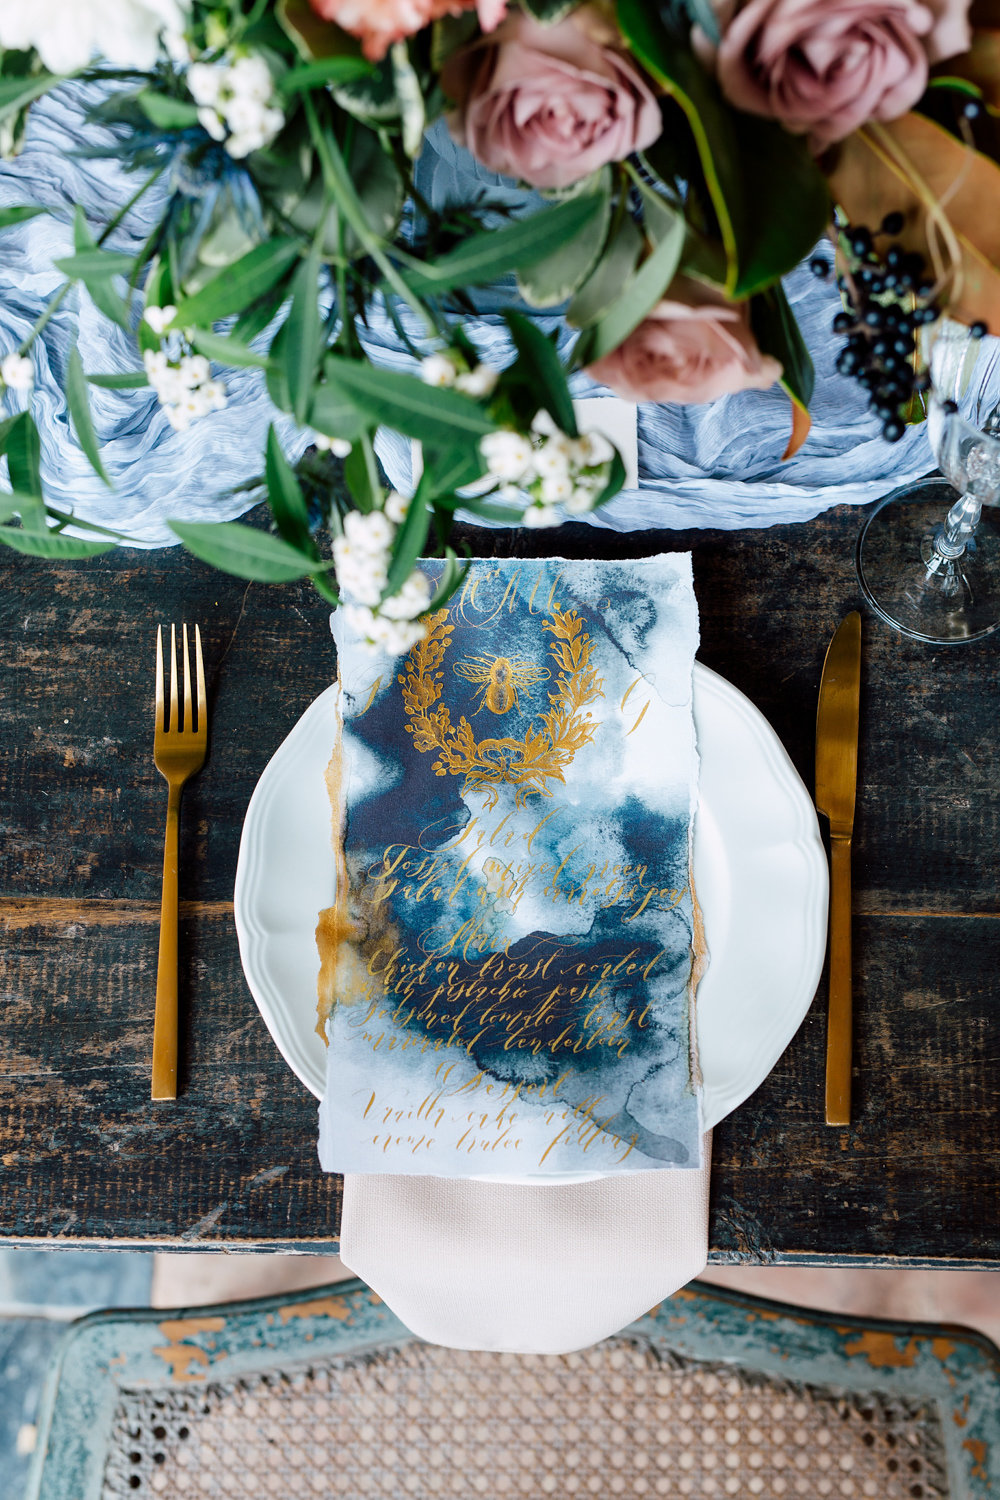 French Inspired Wedding Menu with Romantic Blue and Gold Design